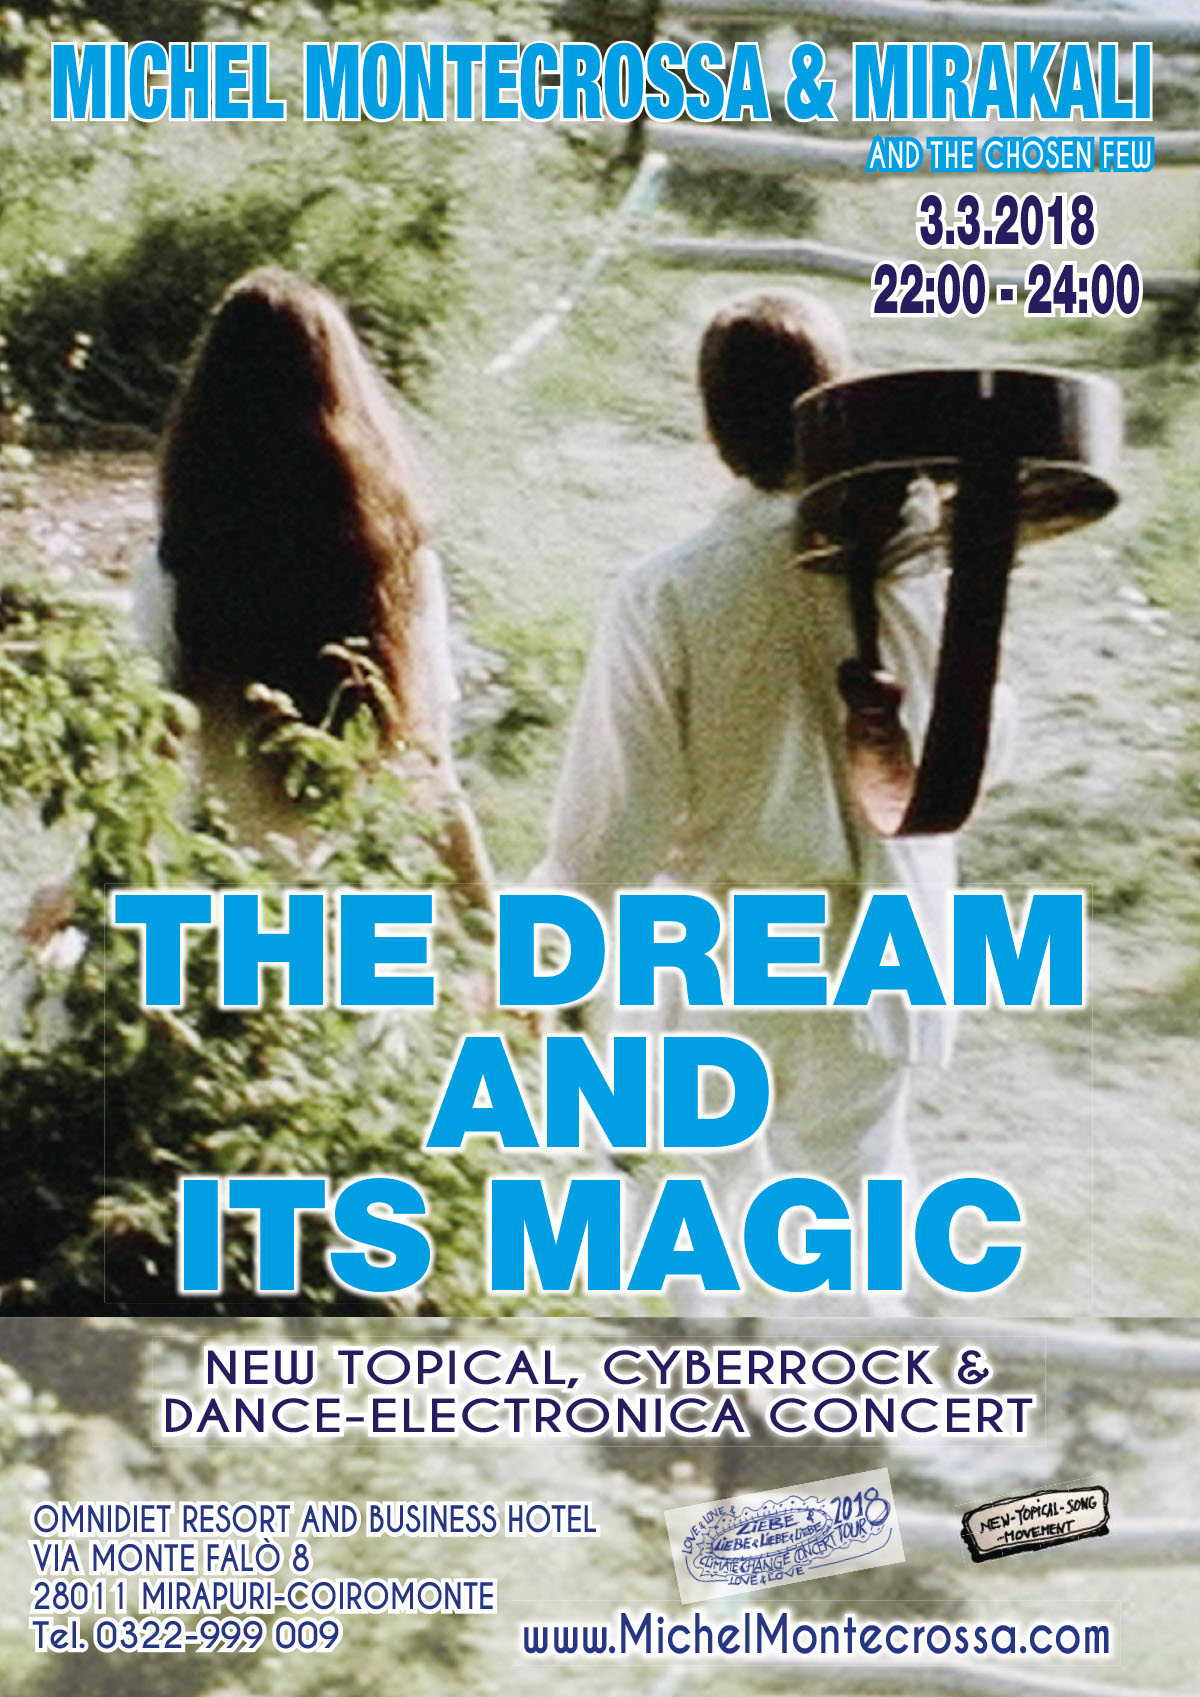 The Dream and its Magic Concert